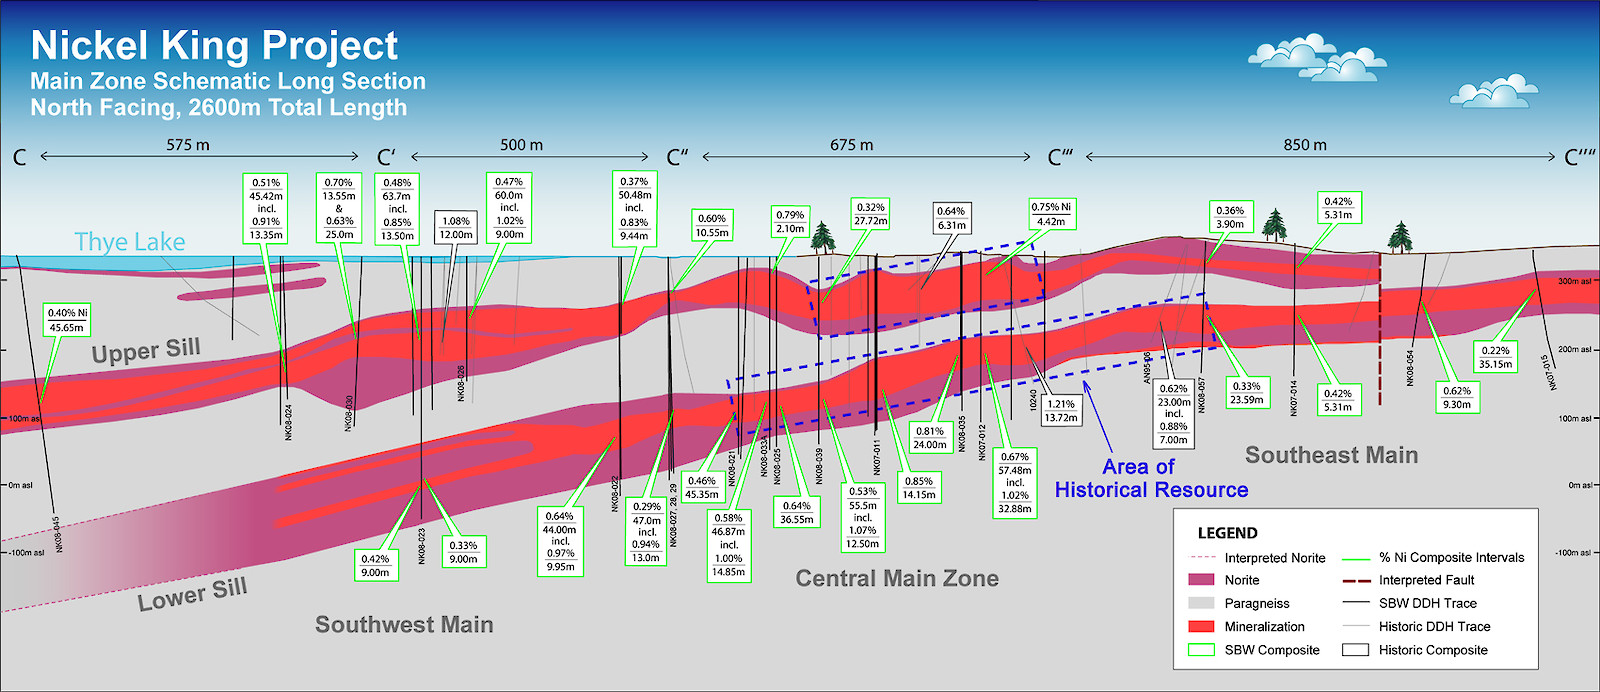 Main Zone Schematic Long Section